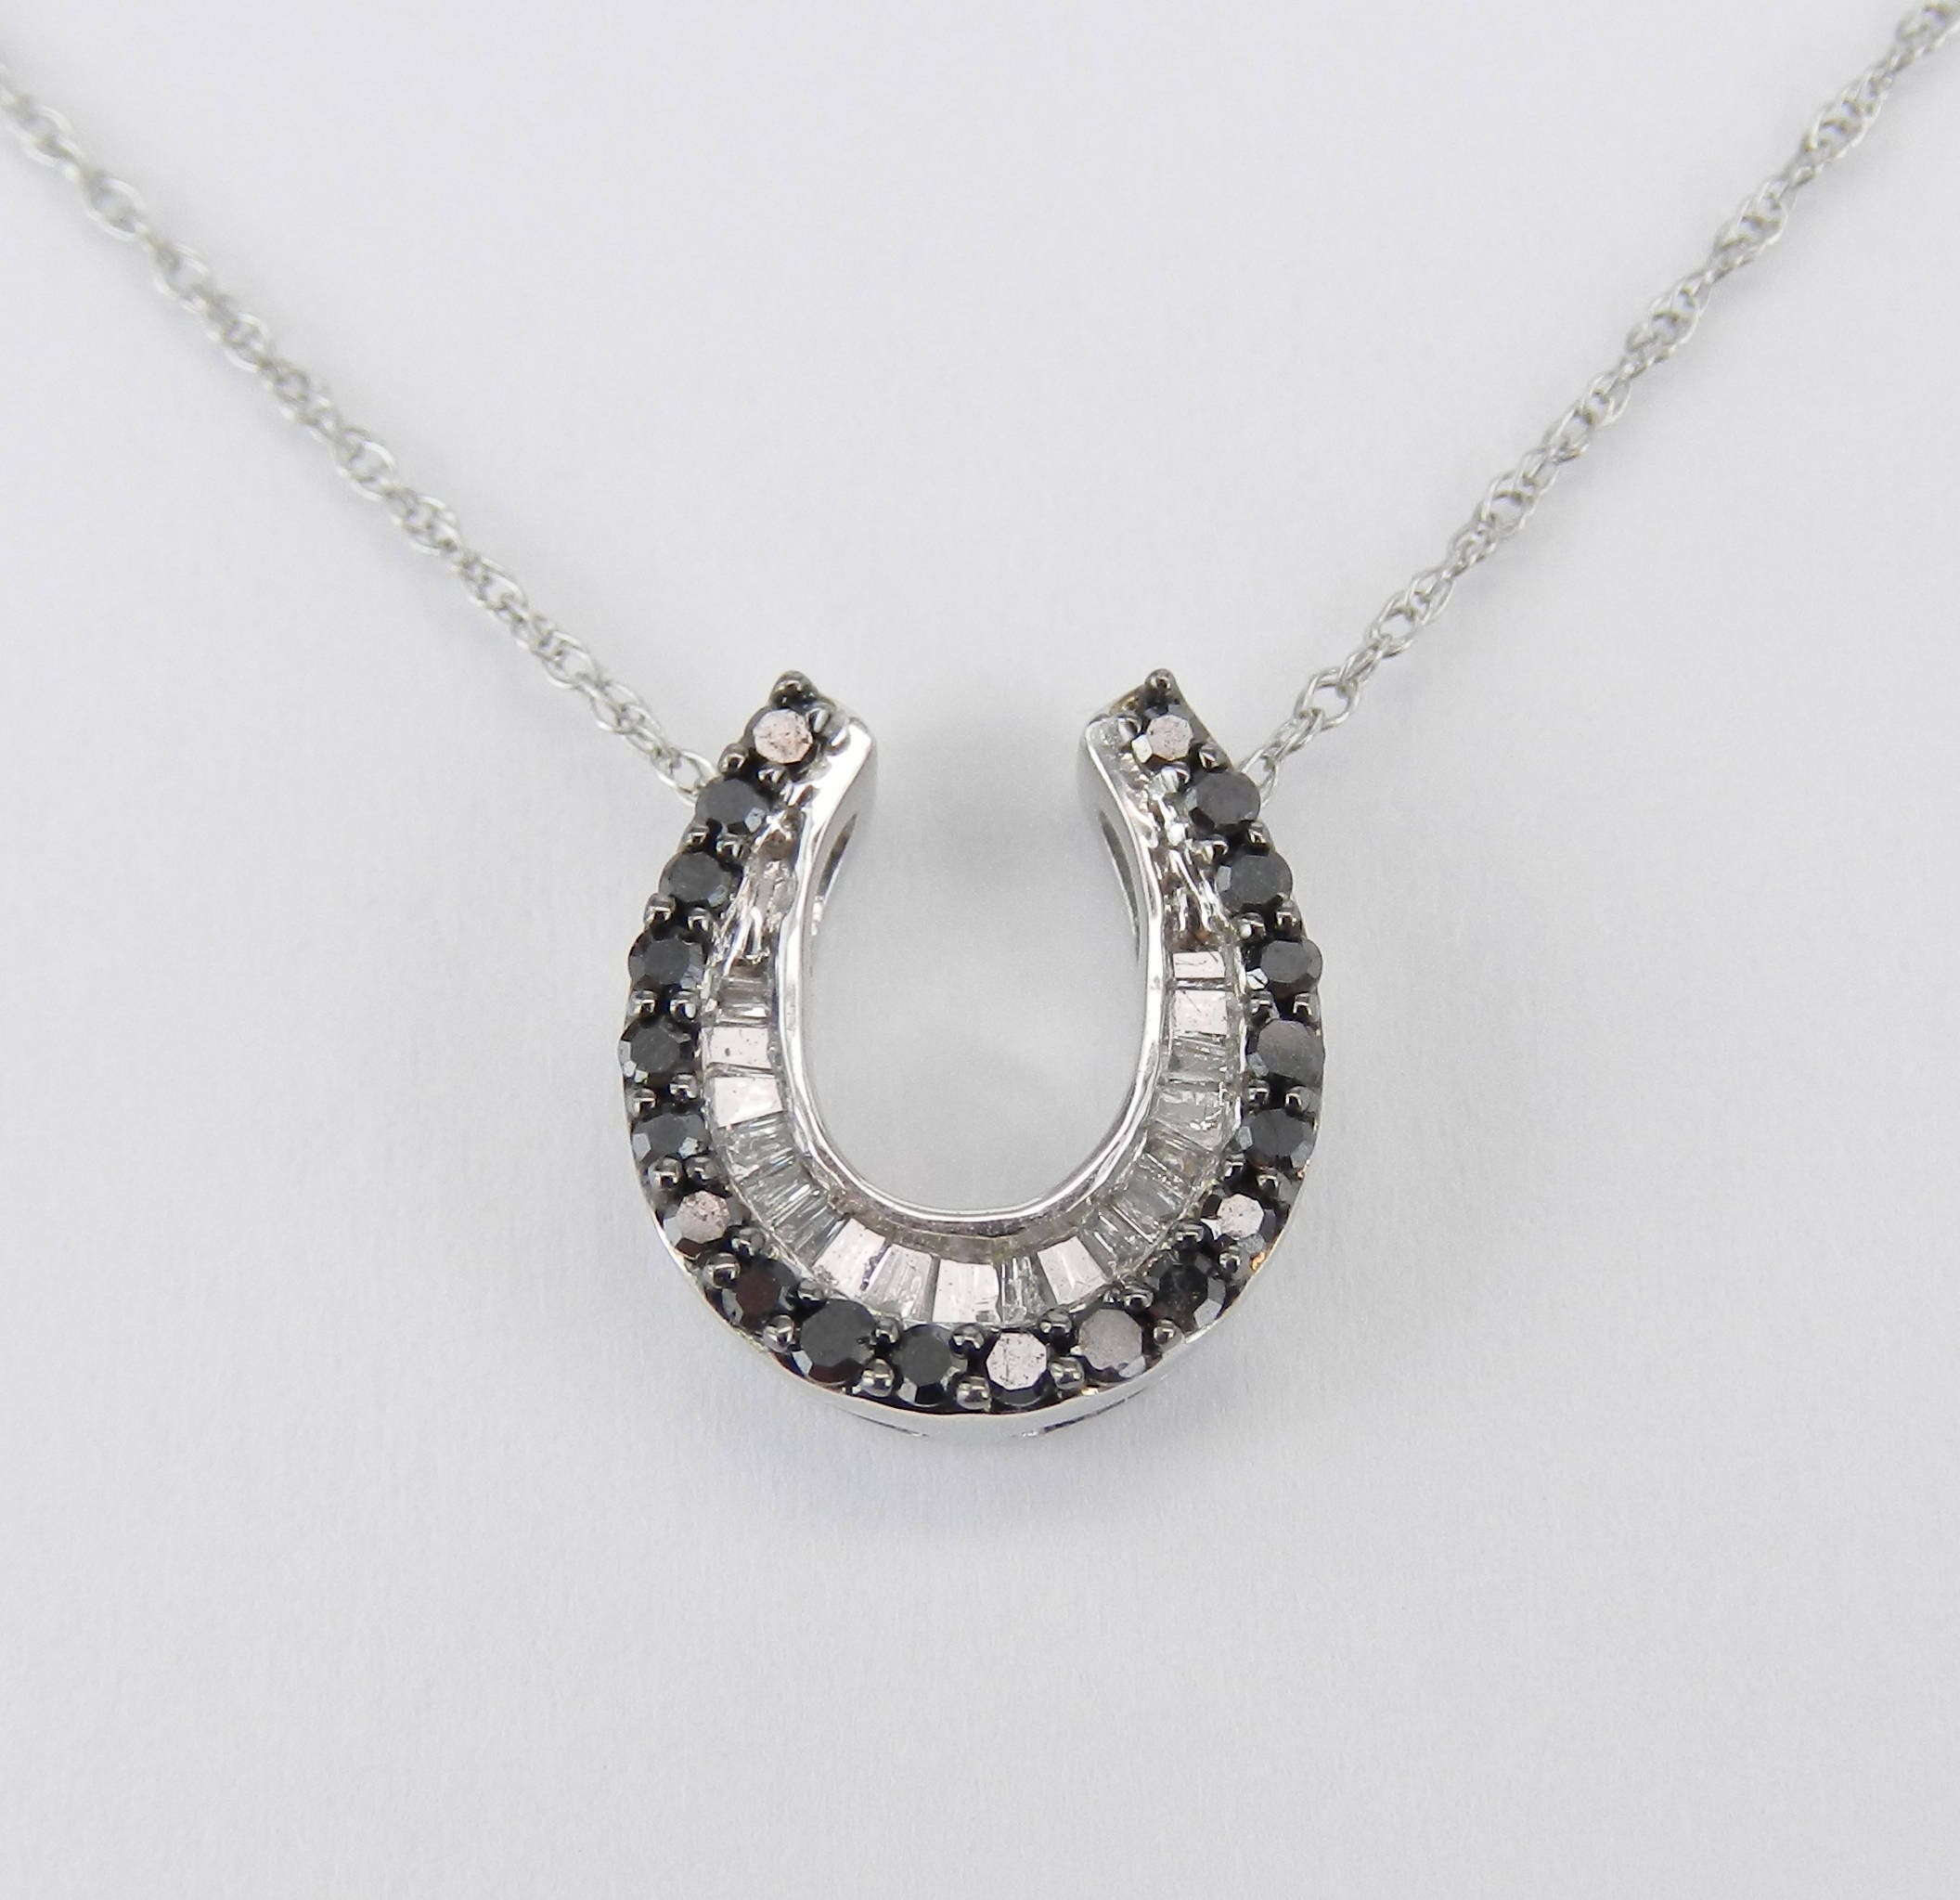 accessorize horseshoe collections necklaces llc necklace pendant necklacehorseshoe products it